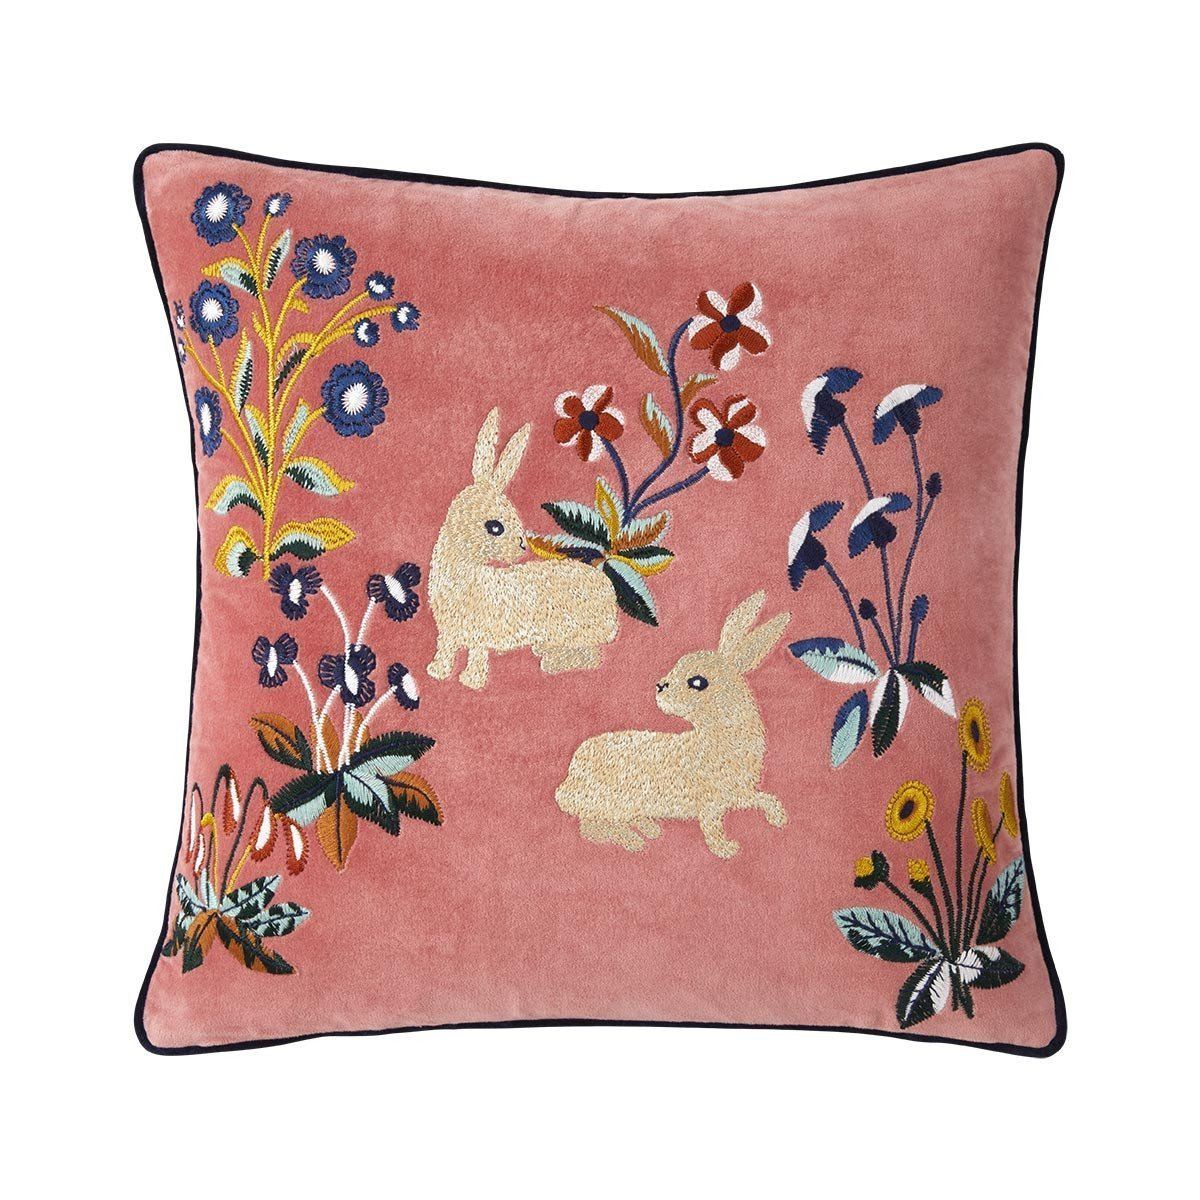 Renaissance Melba Rabbit Pillow by Iosis